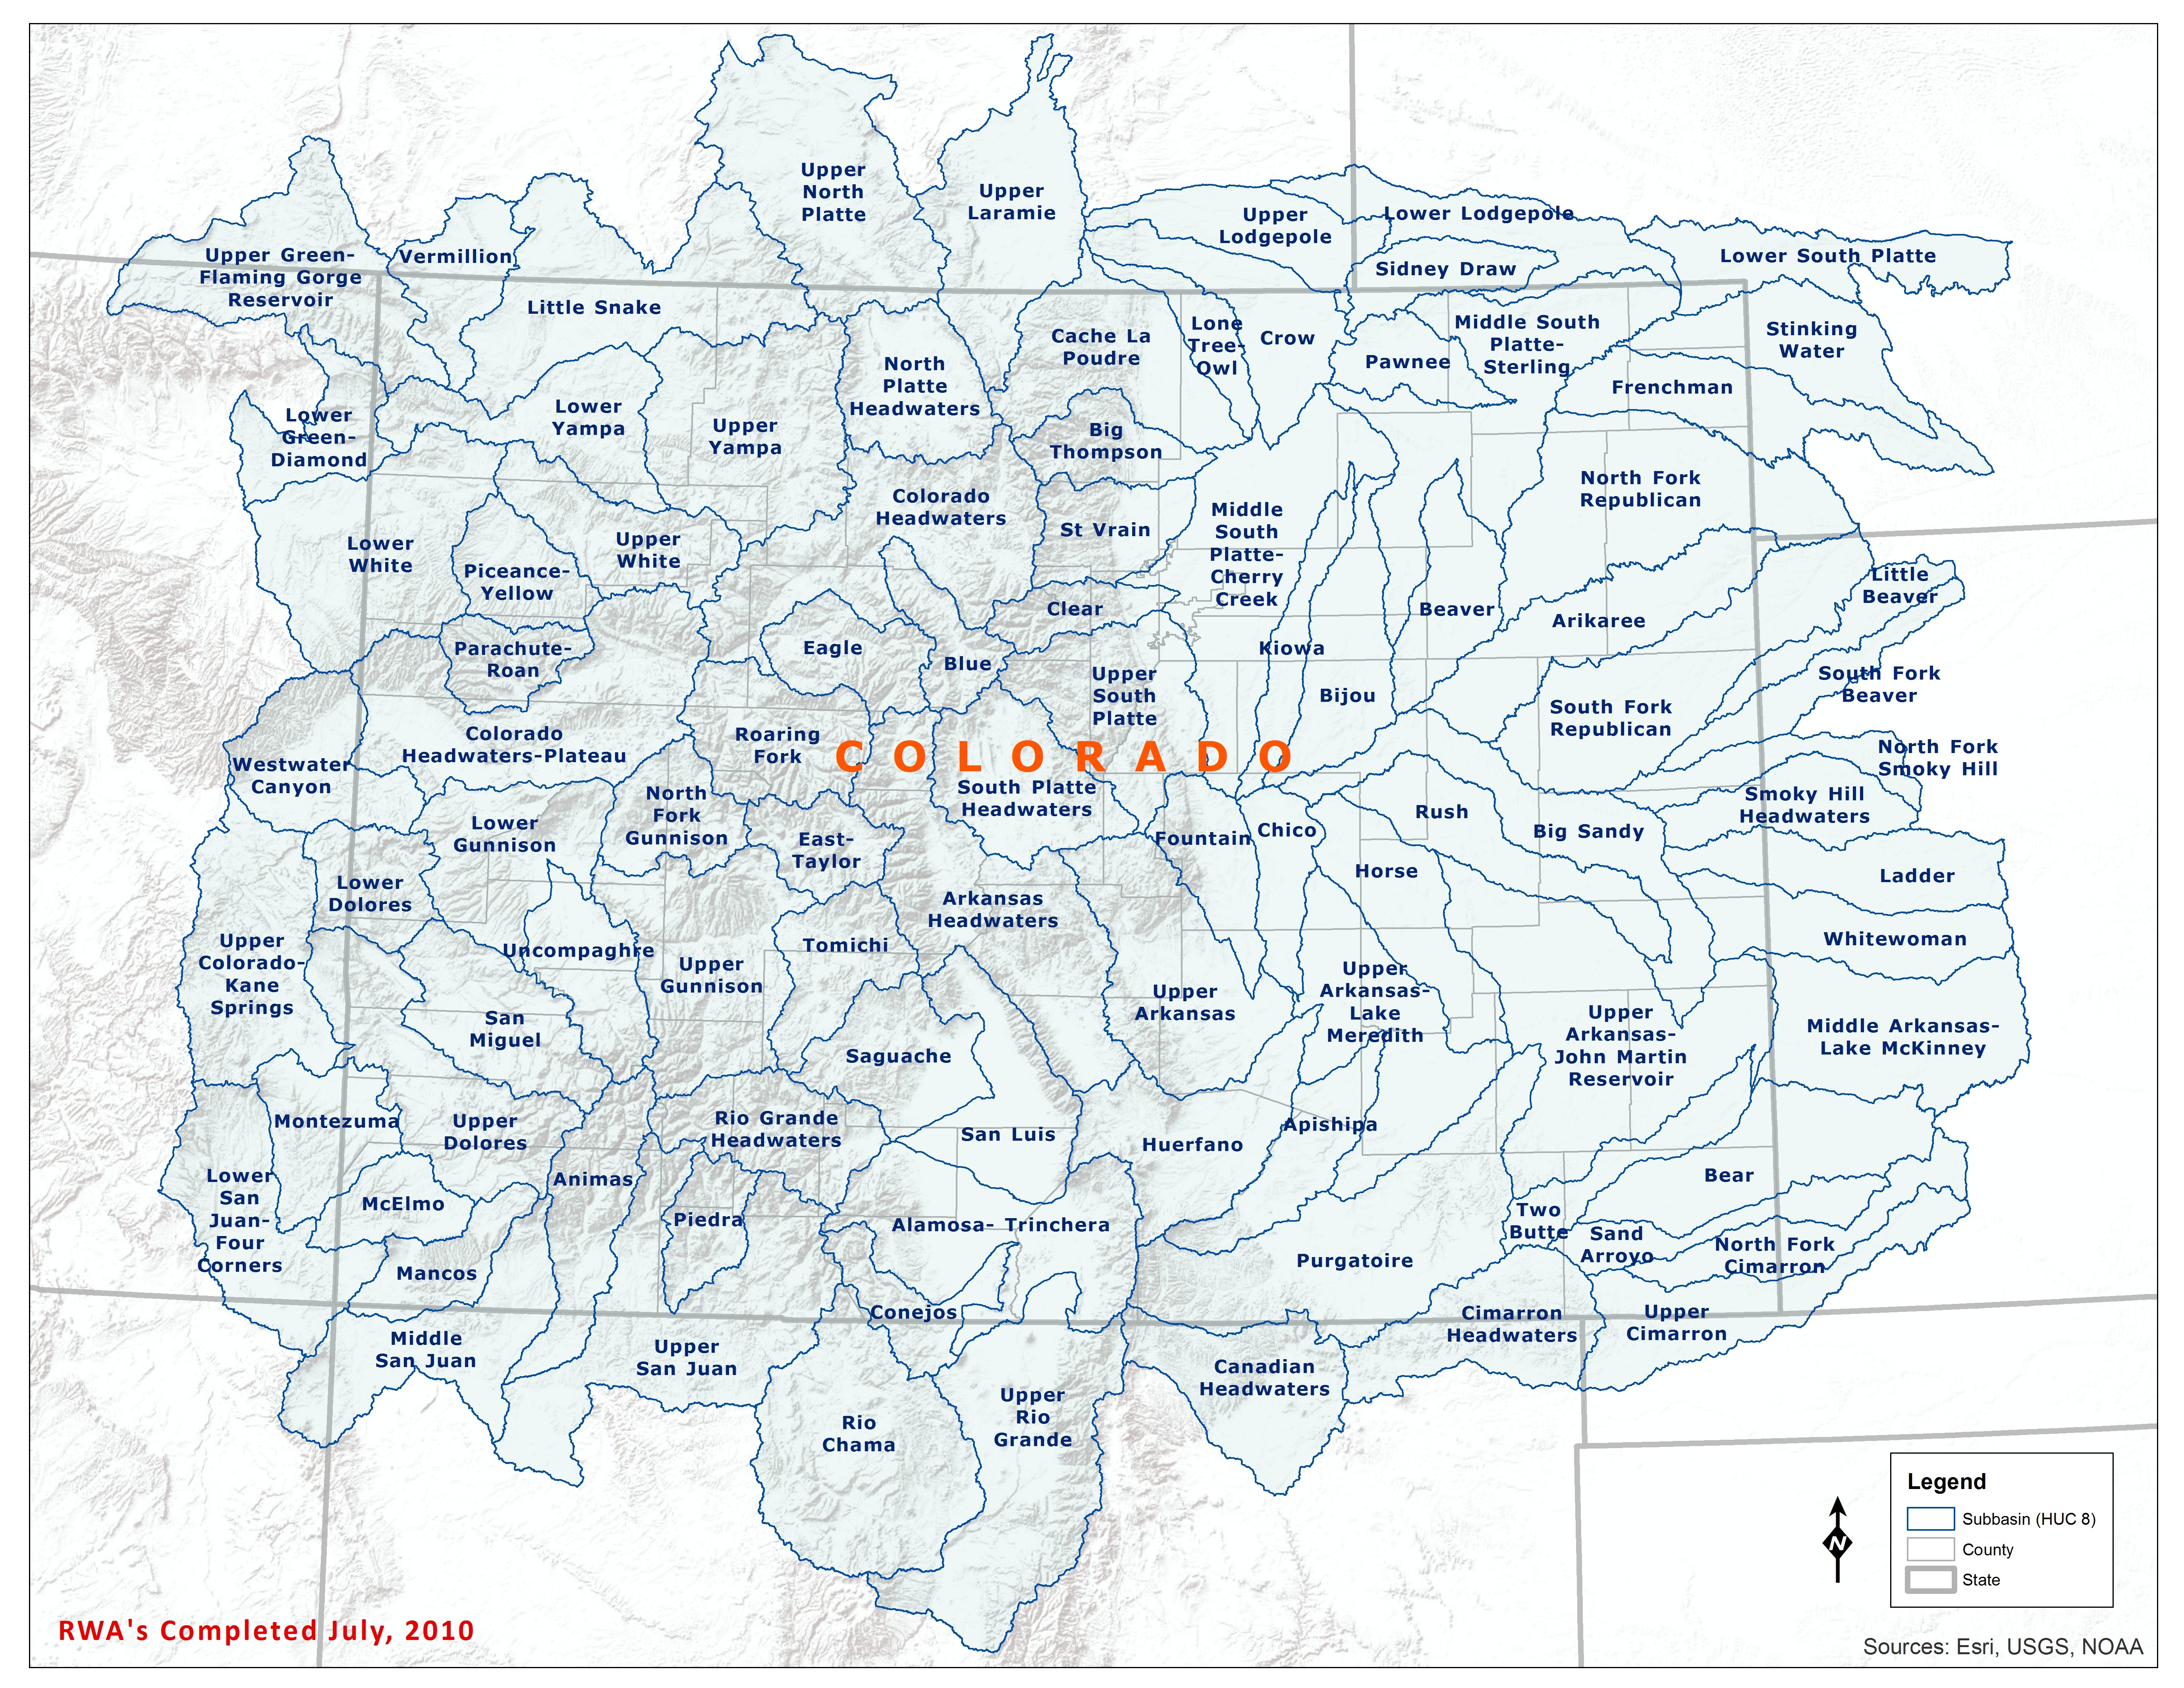 Colorado Subbasin Map - Click to Enlarge